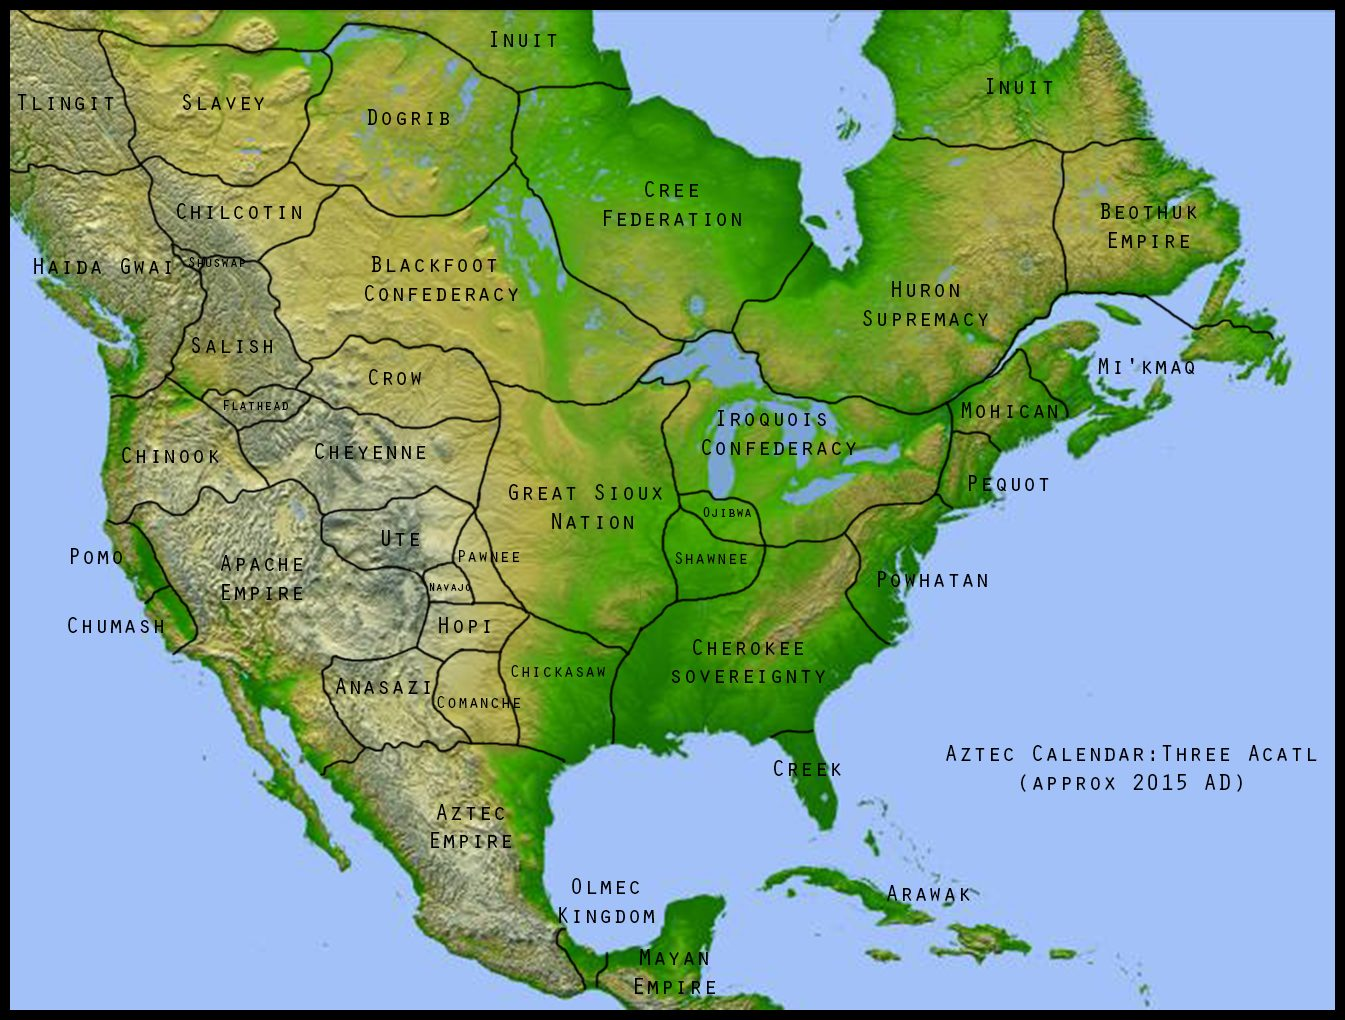 Imaginary Borders - Us navy map of future america hoax